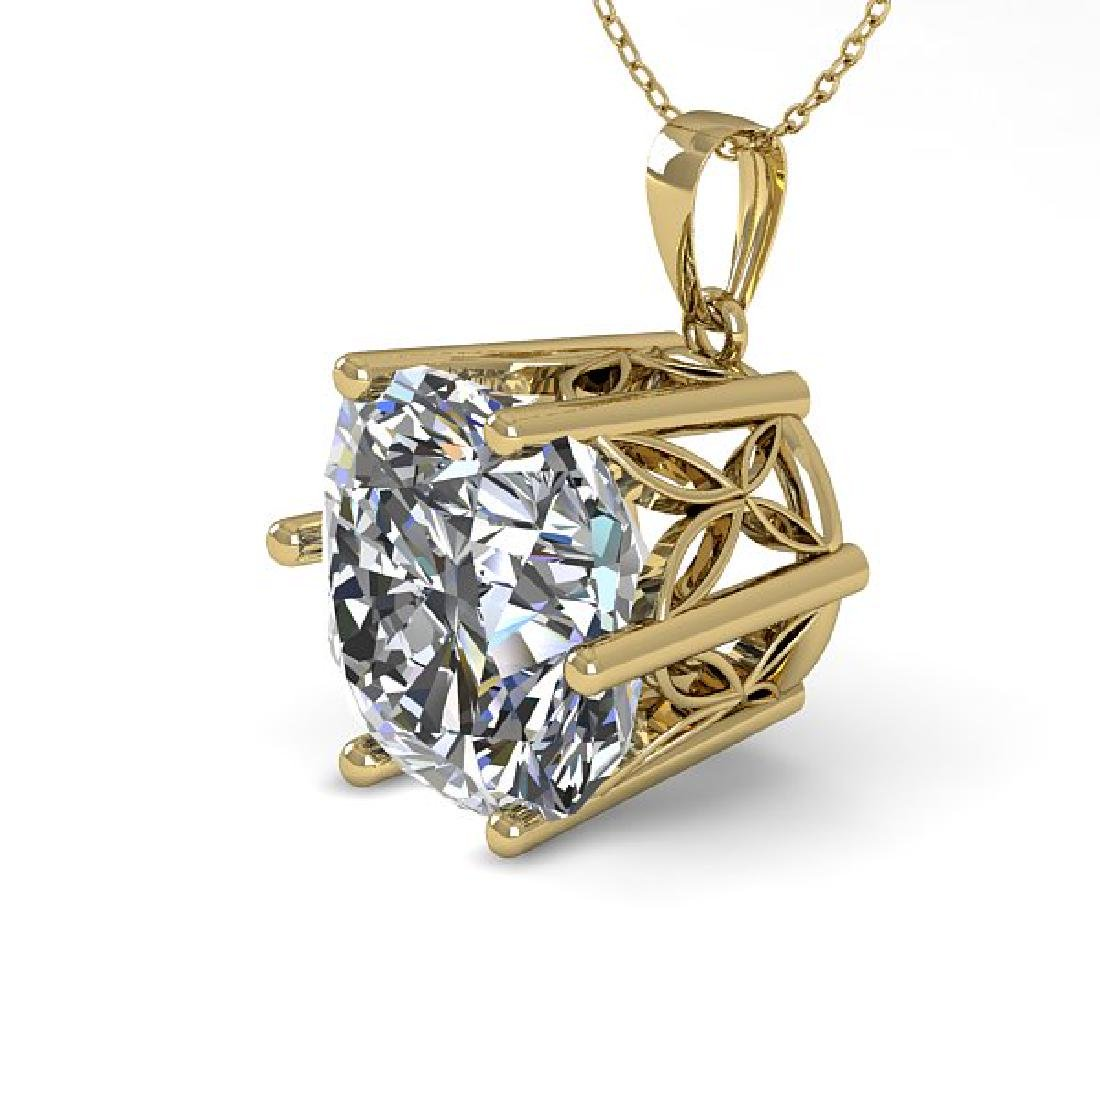 1 CTW VS/SI Cushion Cut Diamond Art Deco Necklace 14K